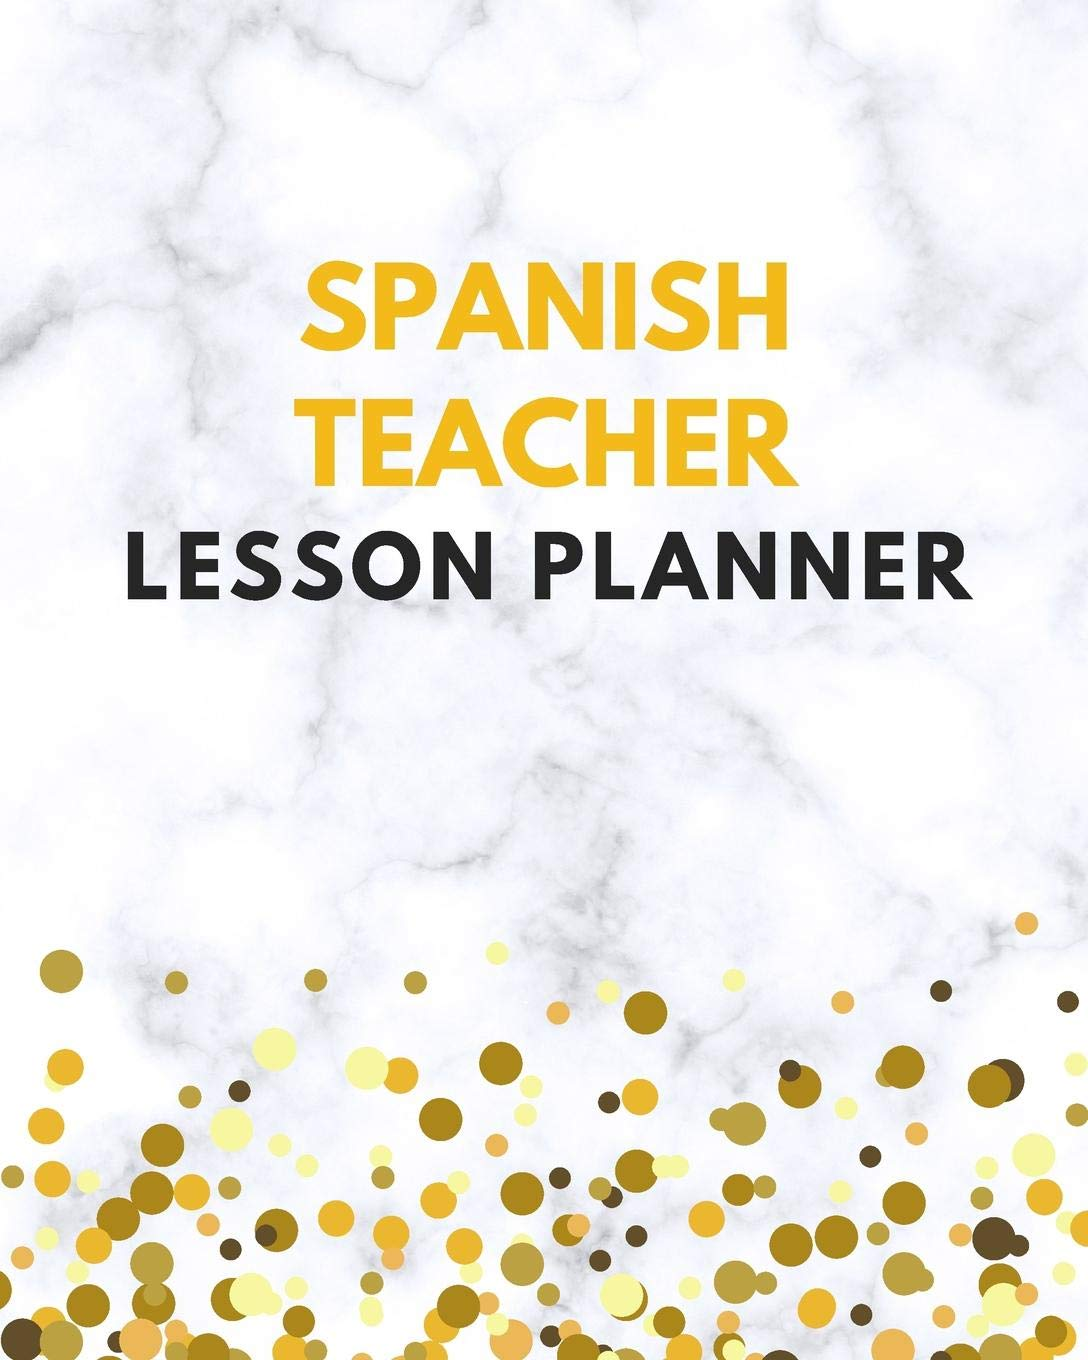 Spanish Teacher Lesson Planner: Spanish Teacher Planner ...